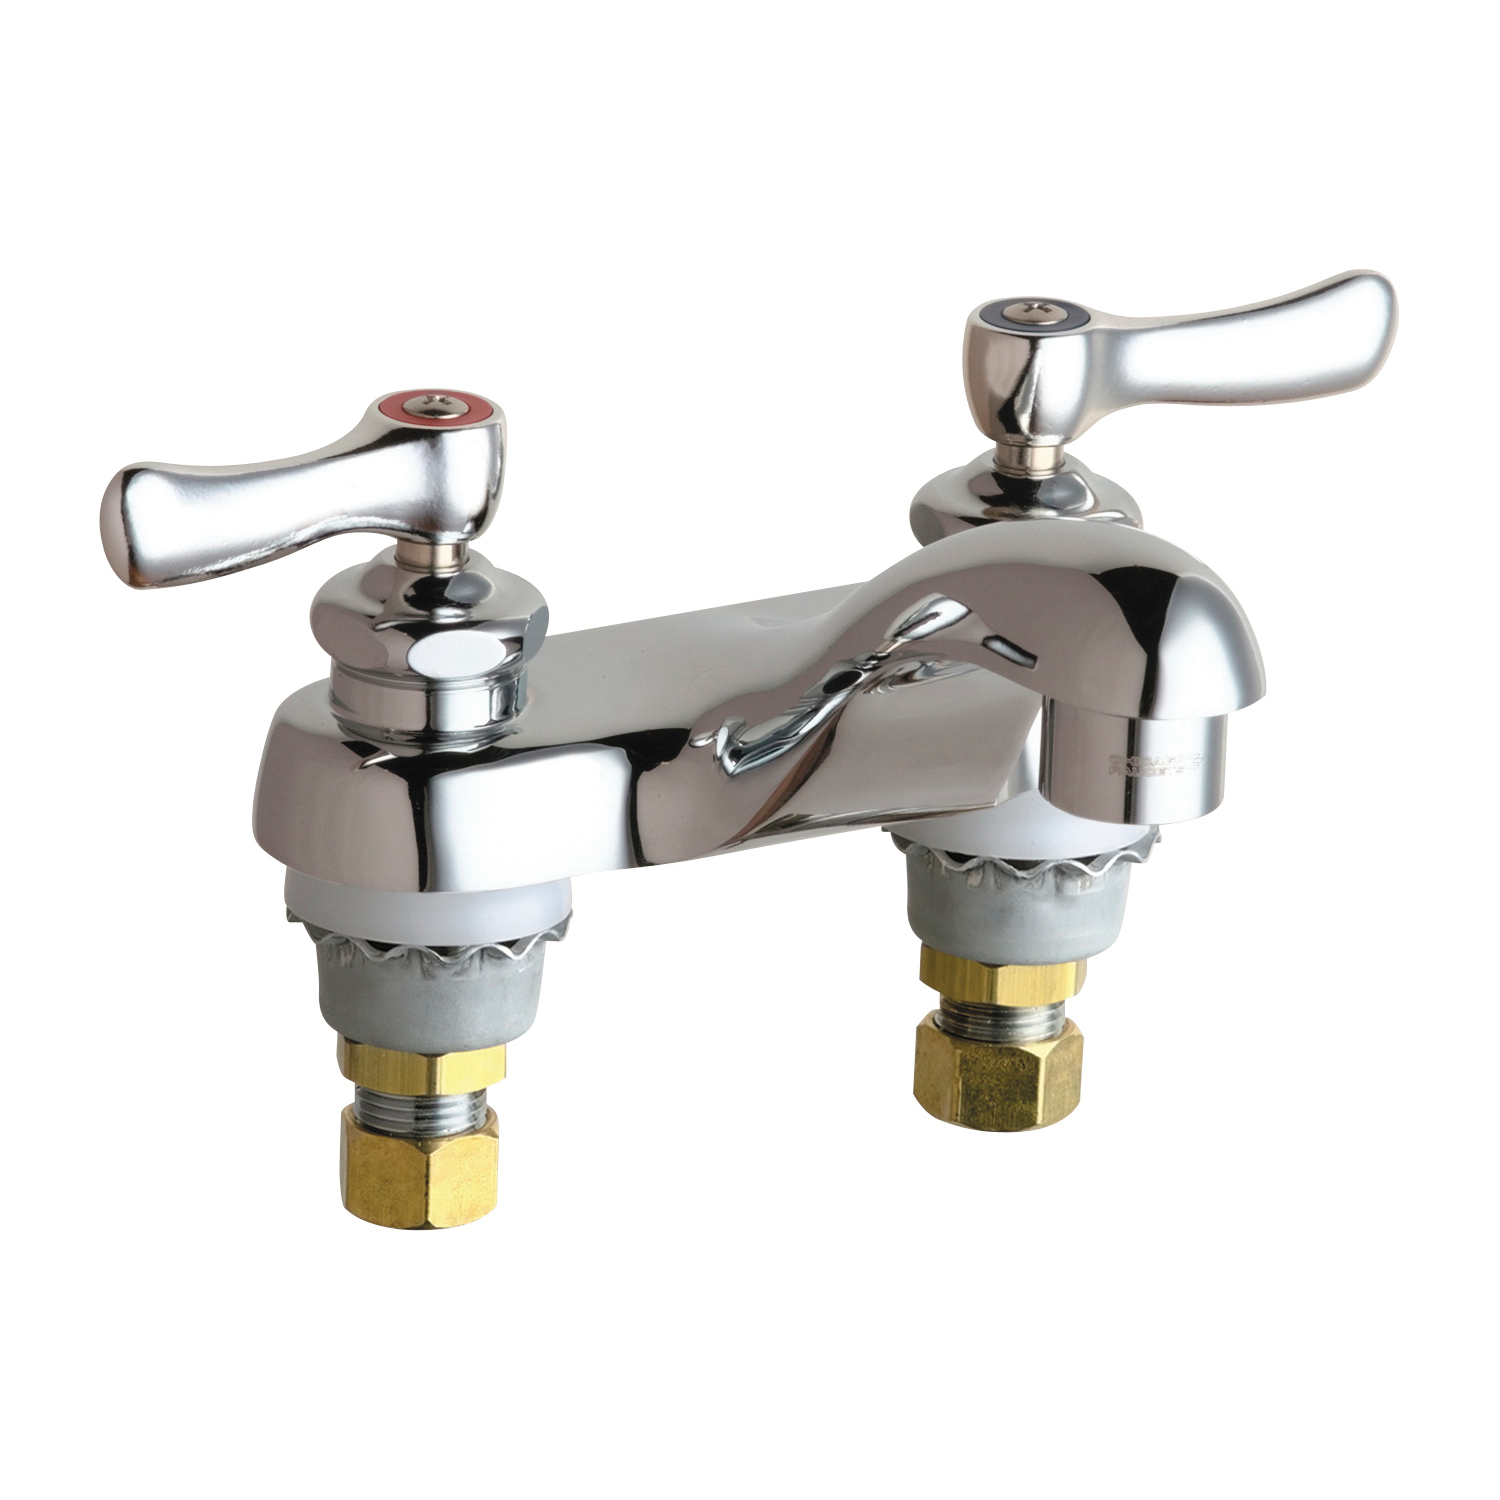 Chicago Faucet® 802-VXKABCP Lavatory Sink Faucet, Chrome Plated, 2 Handles, 2.2 gpm